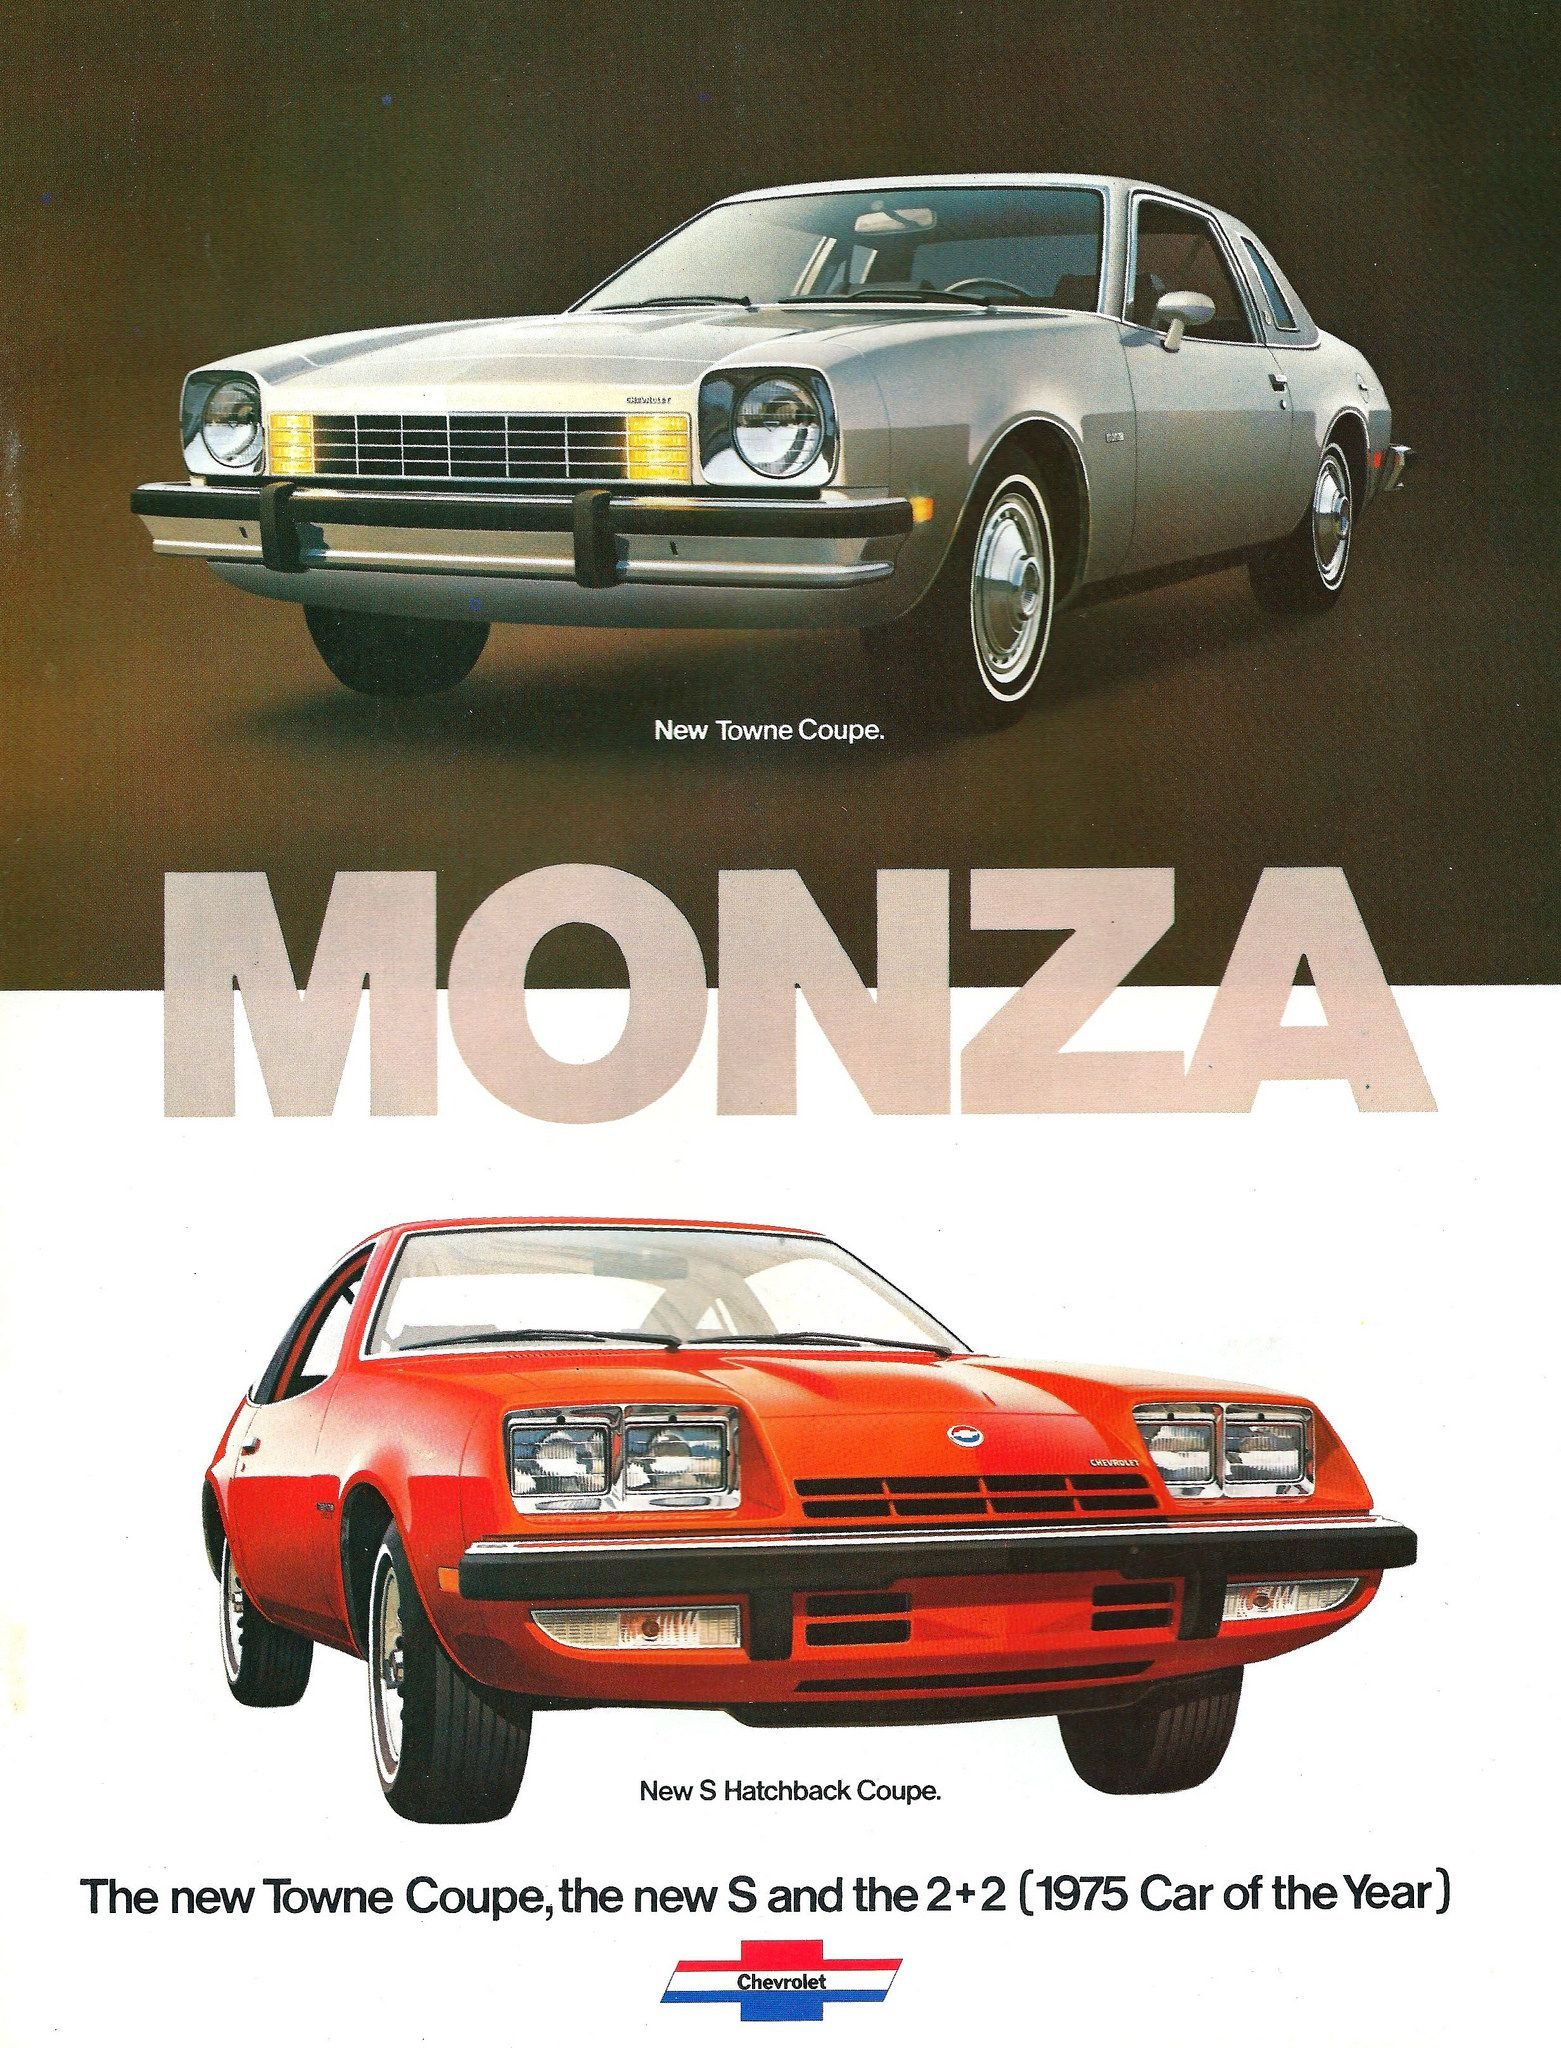 gm general motor company classic old photo advertisement brochure dealer dealership auto Chevy american 2-Page Car Ad 1975 Chevrolet Vega